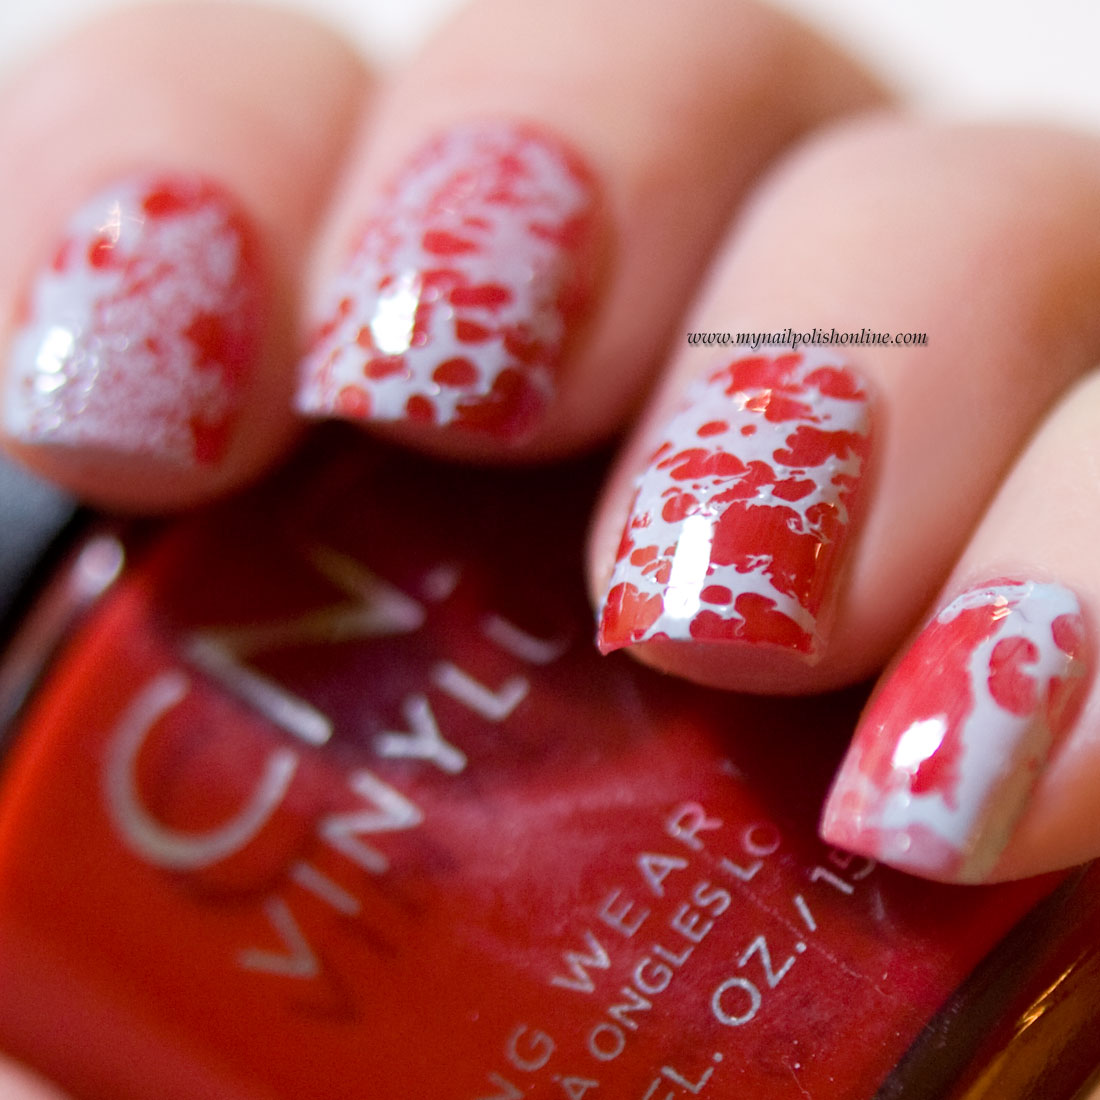 Nail Art on red